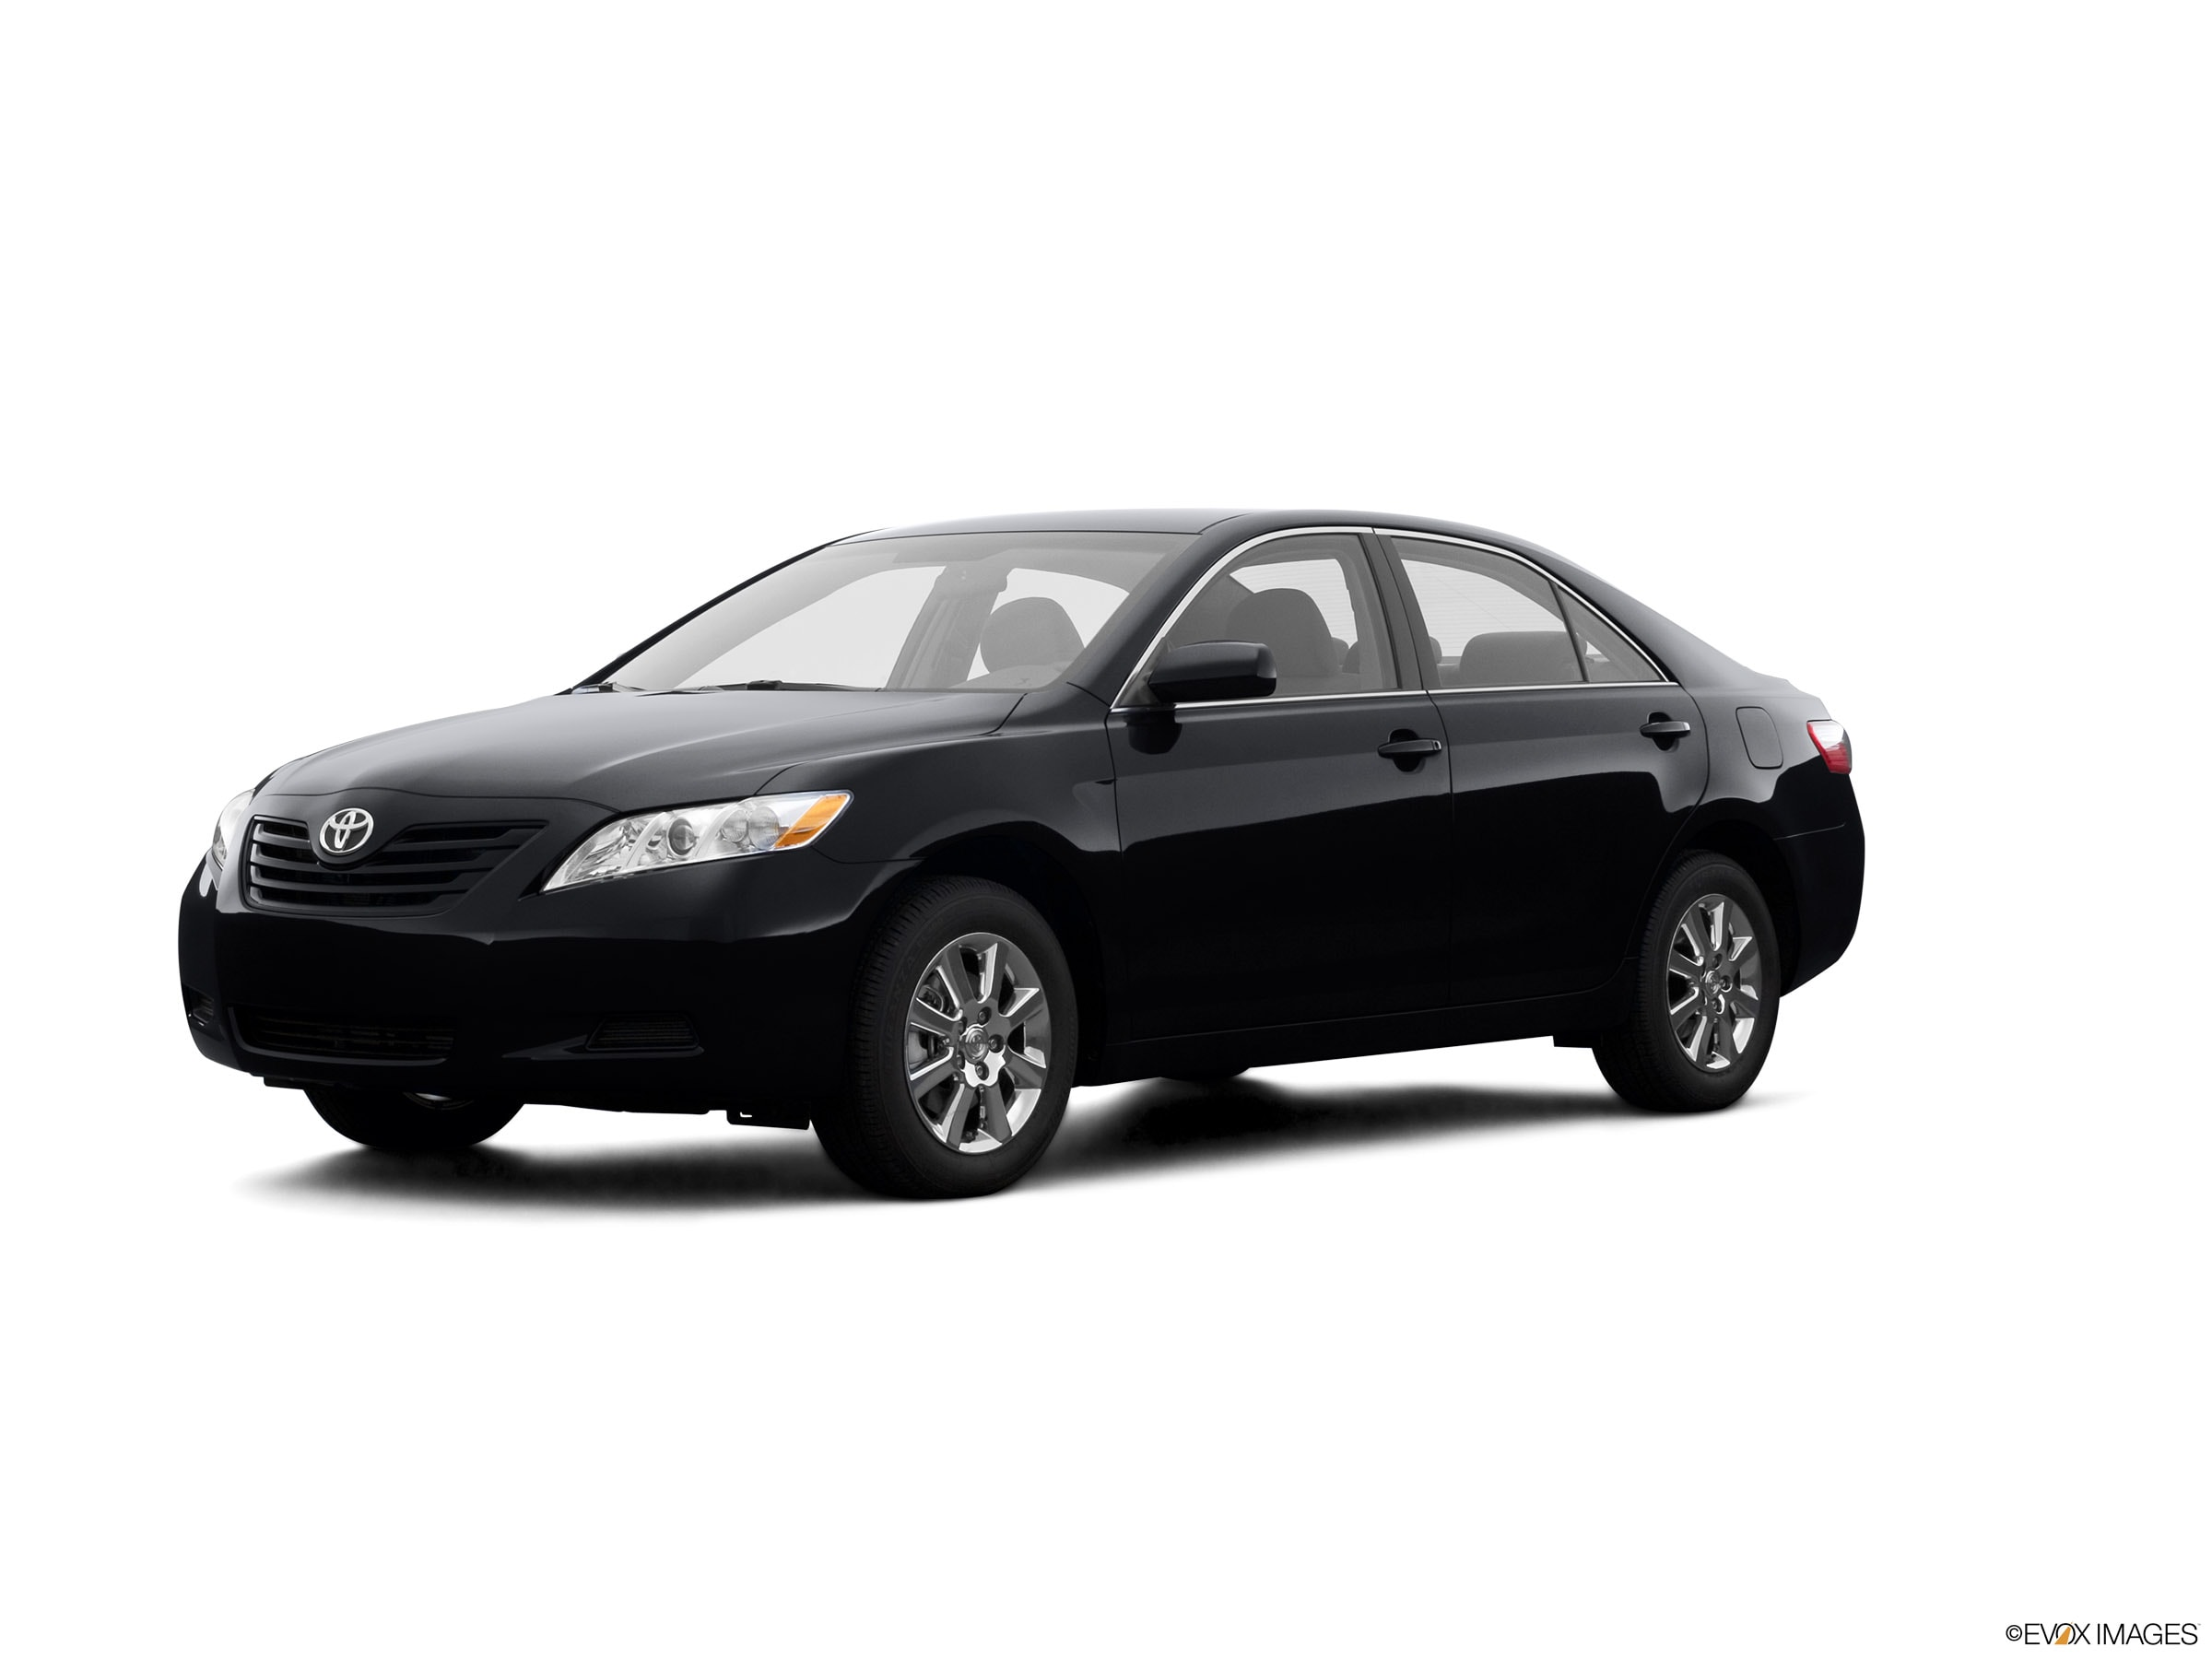 Used 2008 Toyota Camry LE with VIN 4T1BE46K48U771586 for sale in Maplewood, Minnesota